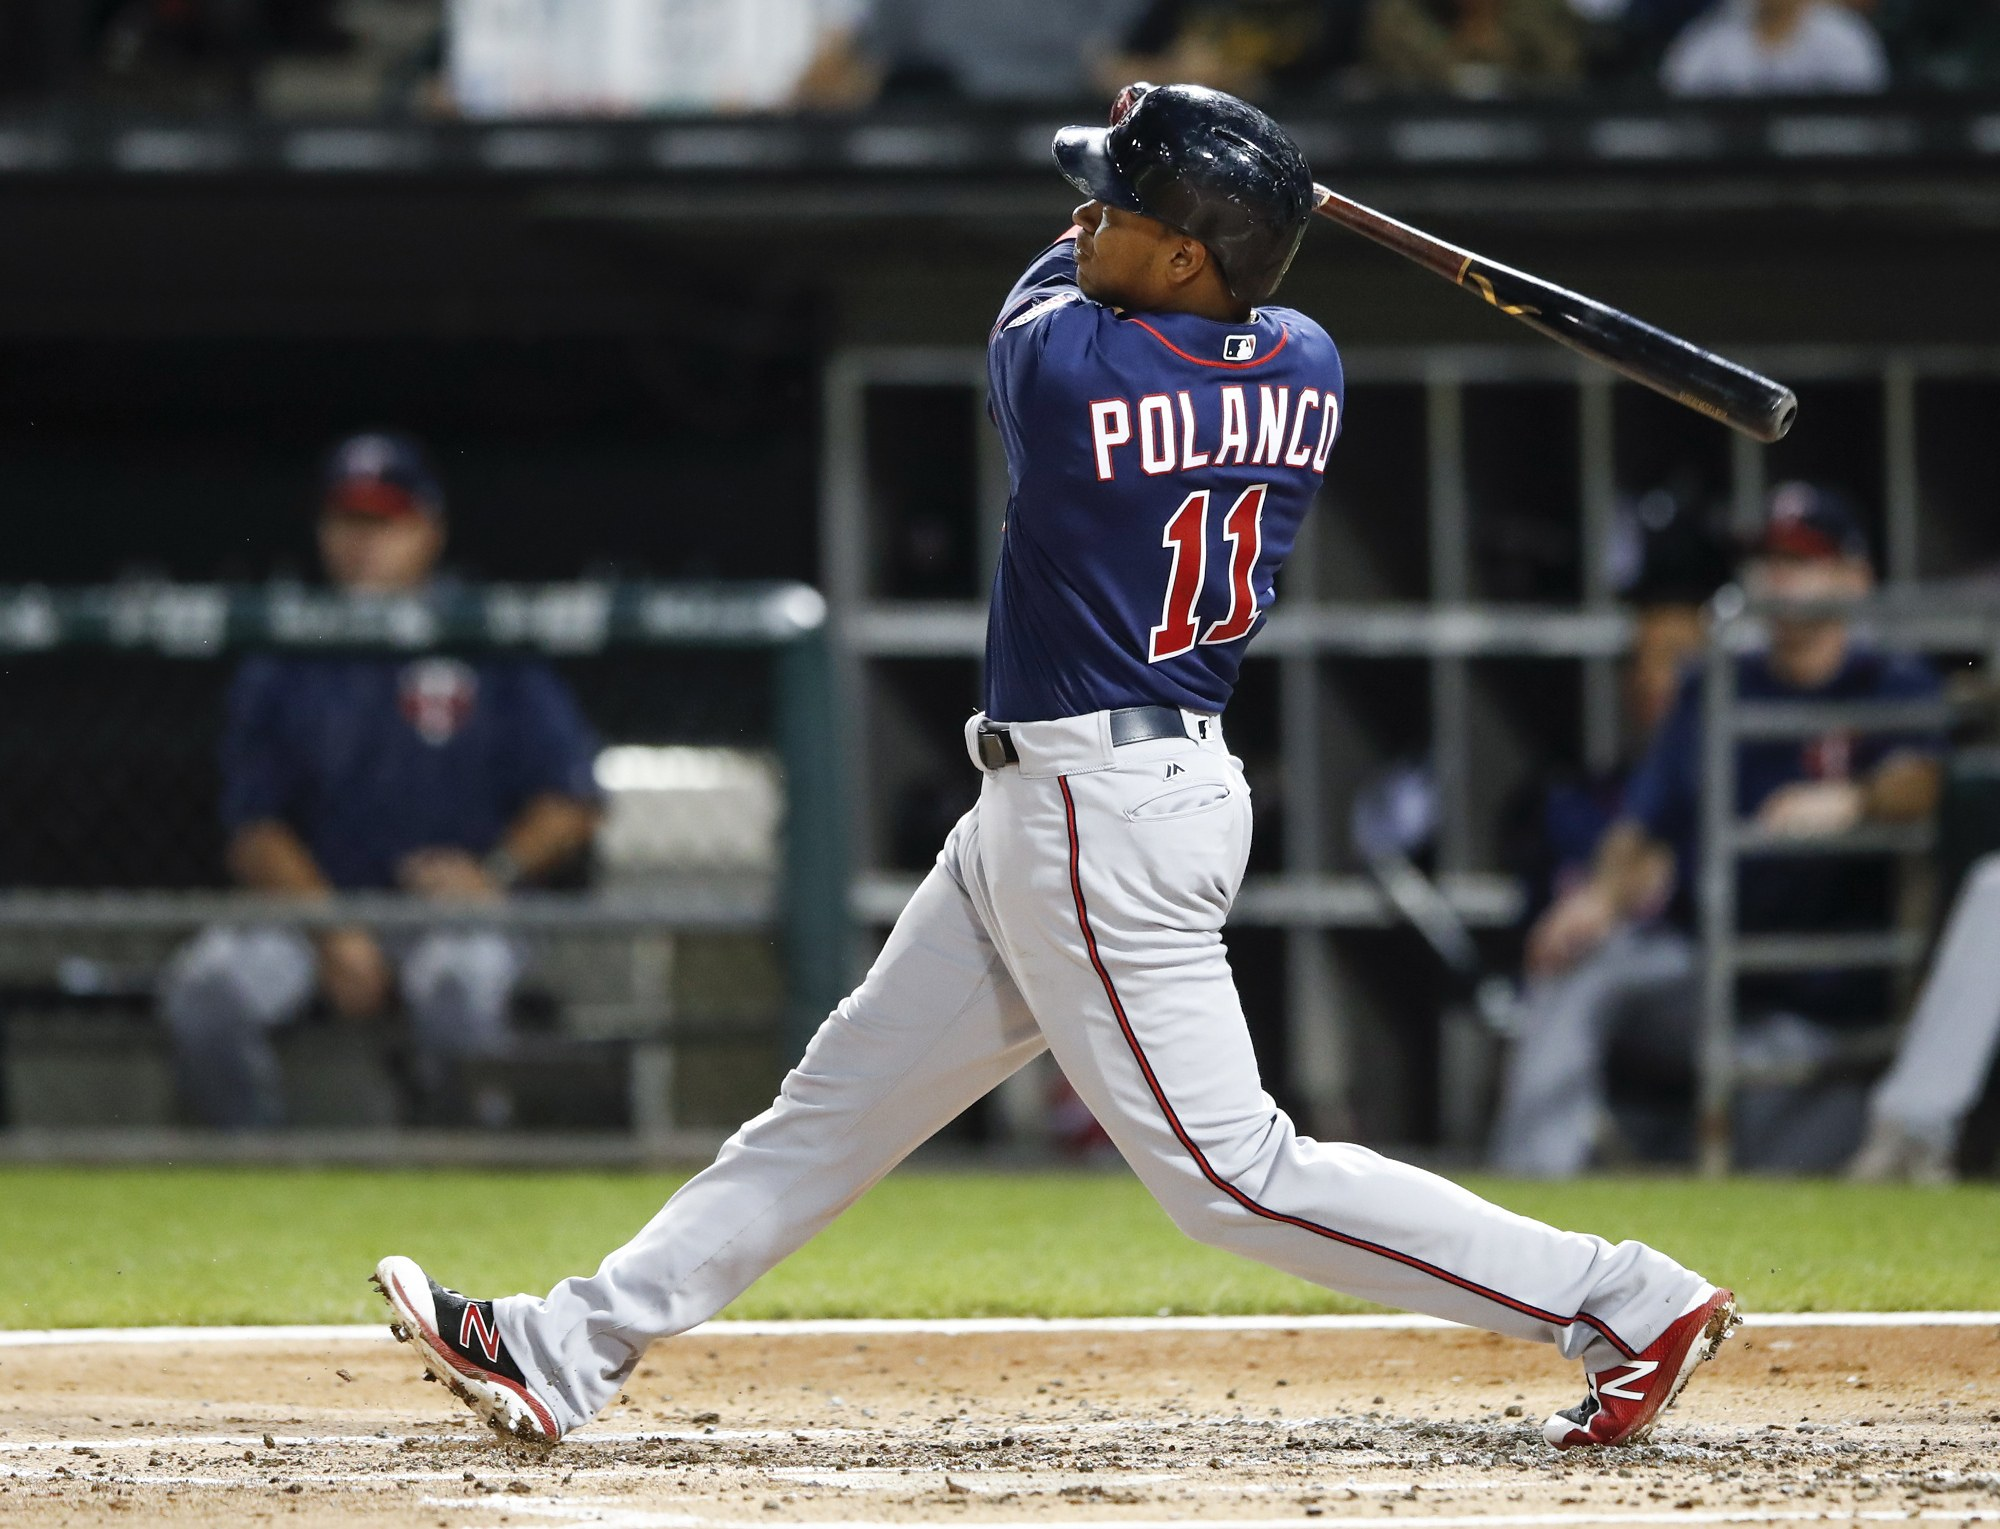 Jorge Polanco of Minnesota Twins Suspended 80 Games After Testing Positive for PEDs